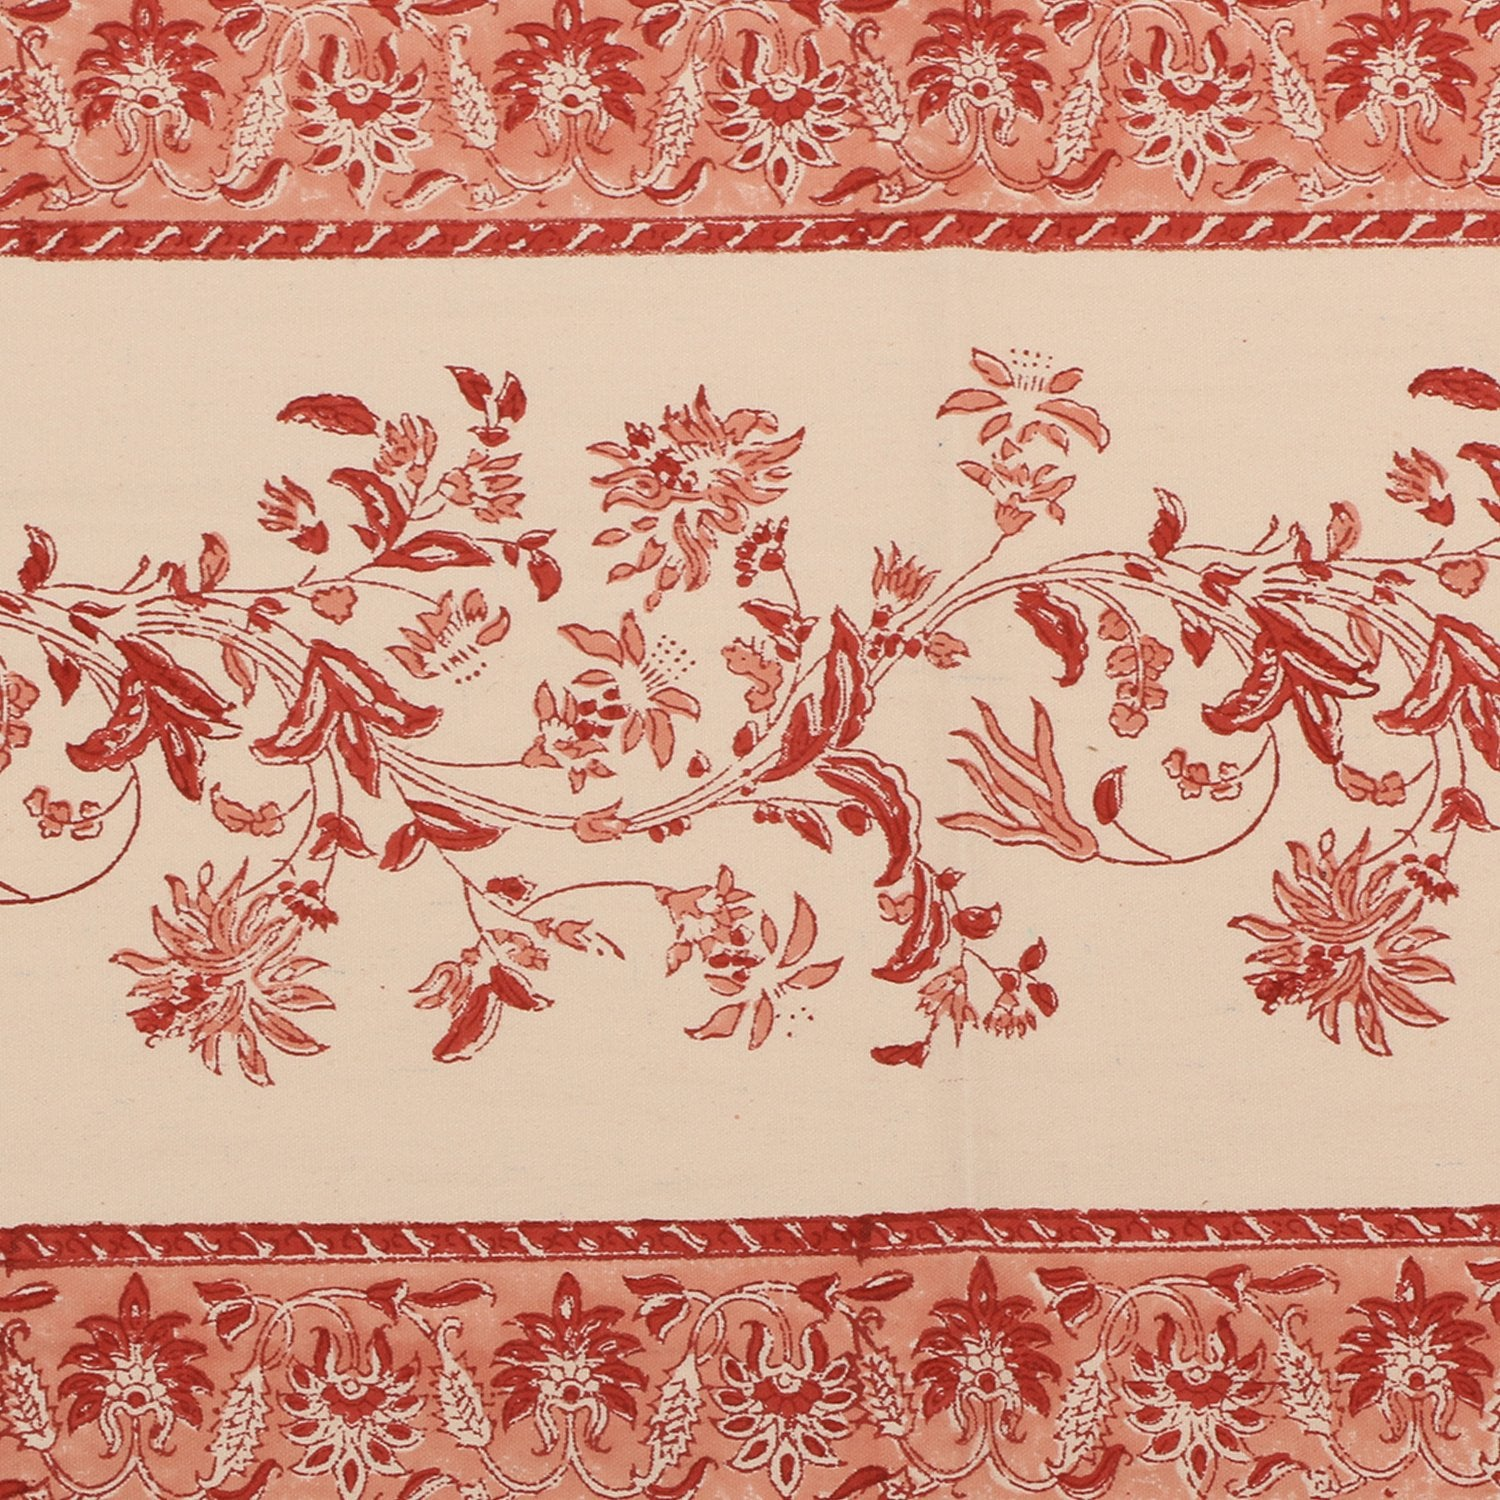 Cotton Floral & Paisley Table Runner - 1